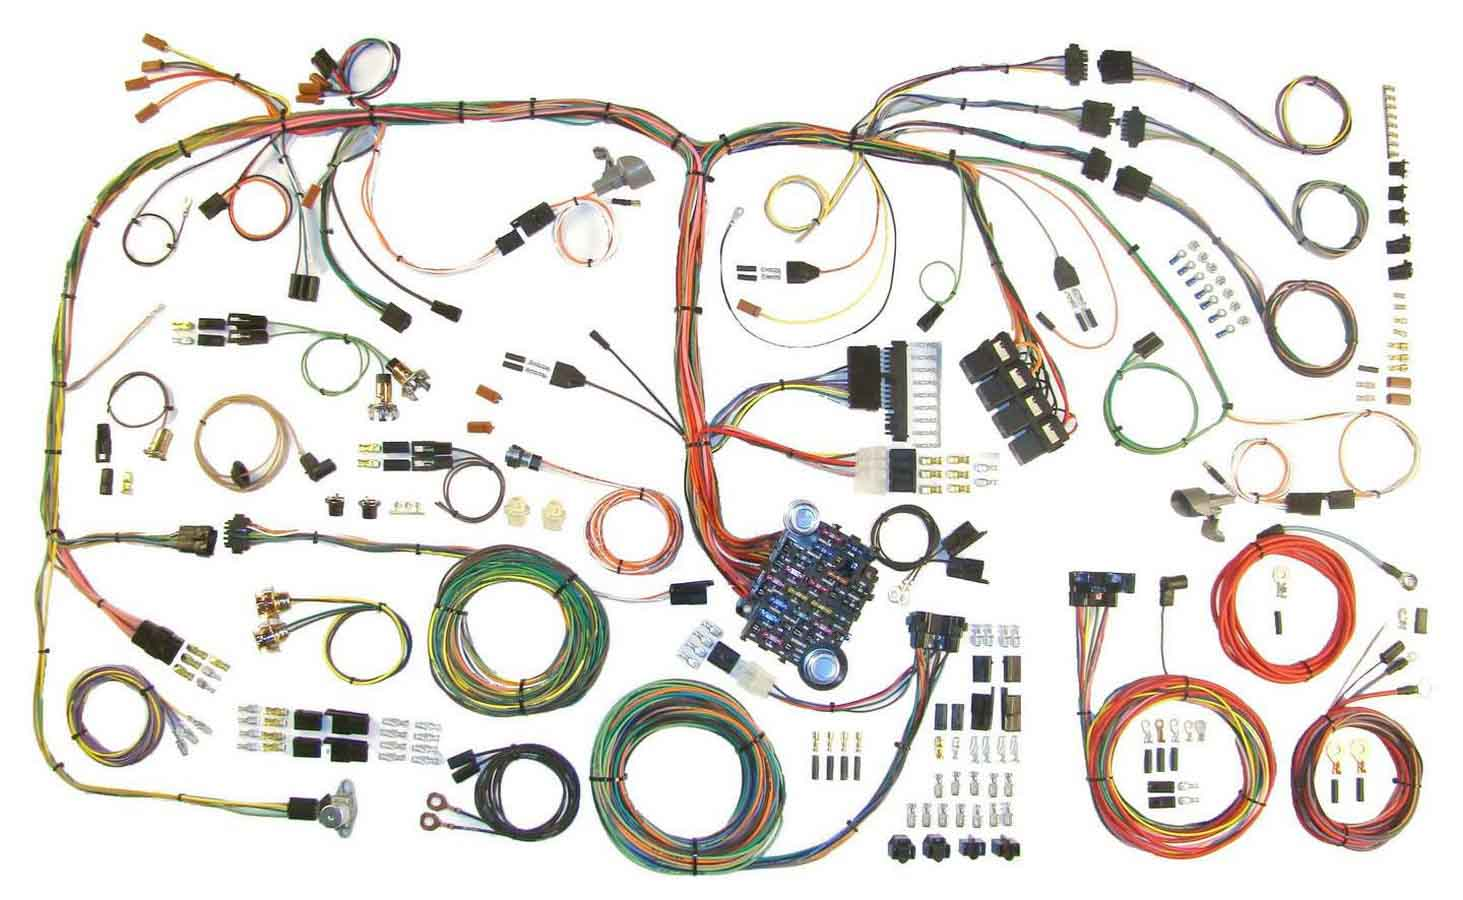 Shop For Wiring Harnesses Arob Performance Parts 1973 Firebird Engine Diagram 70 74 Challenger Harness